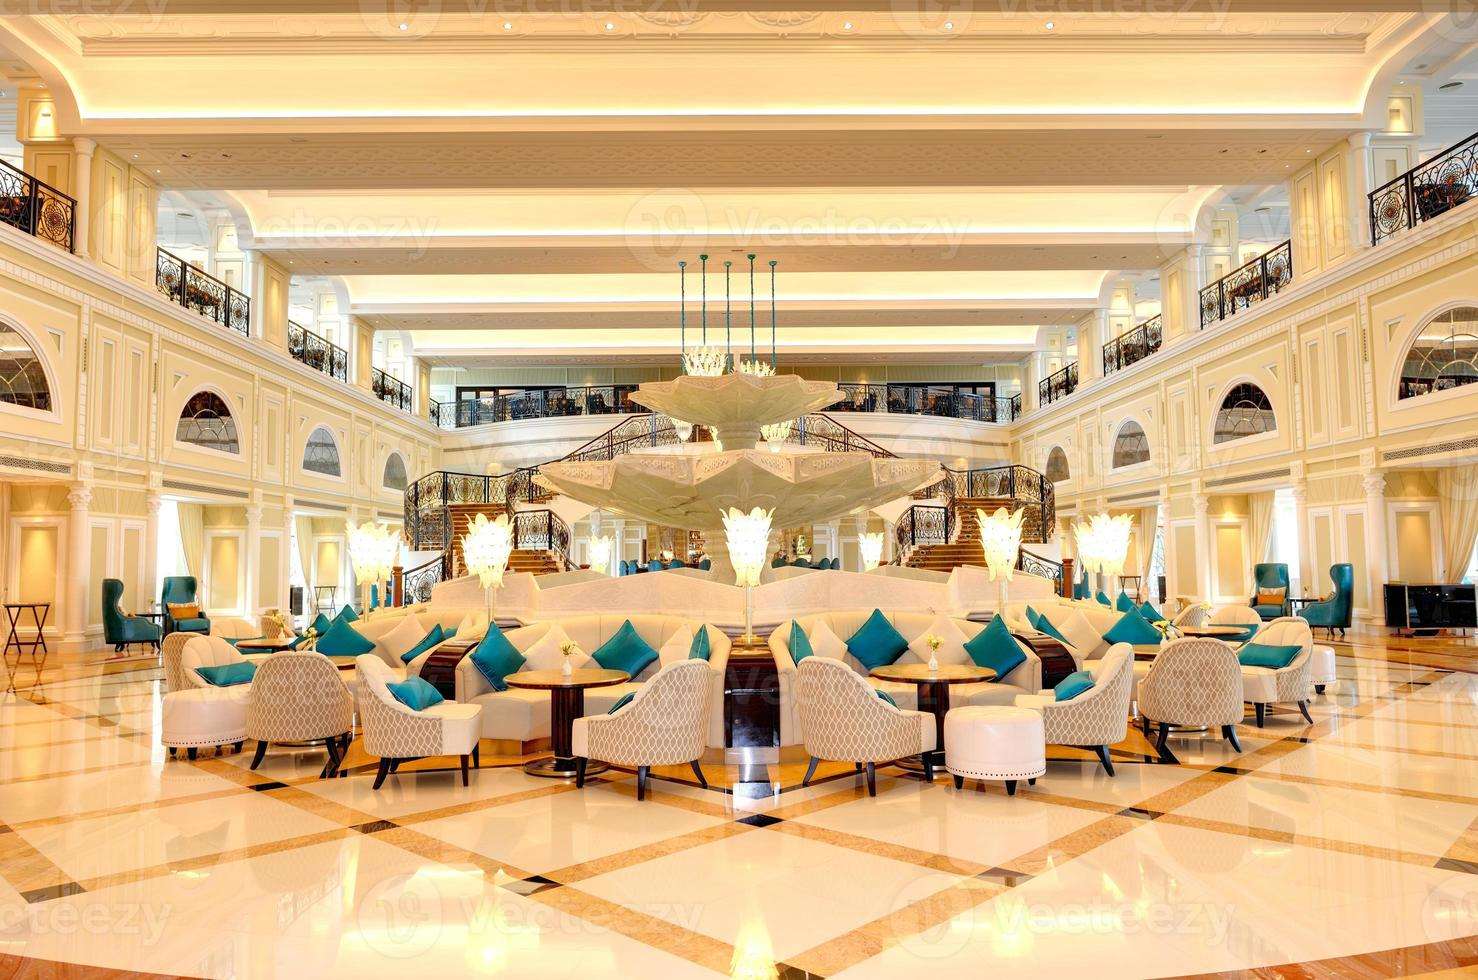 Illuminated lobby interior of a luxurious hotel photo